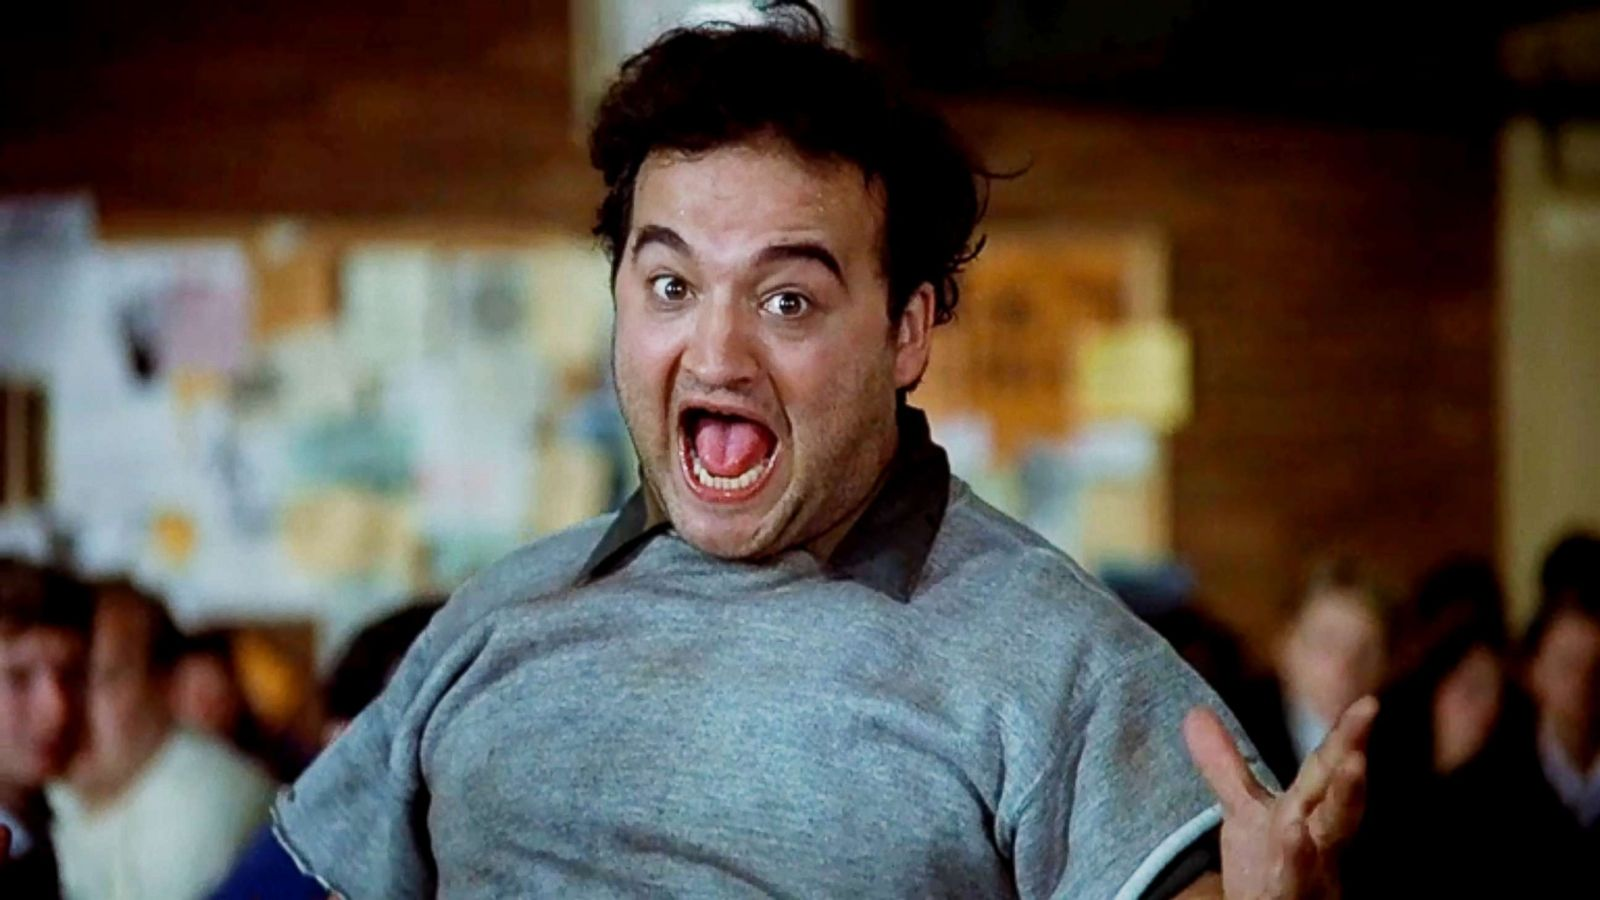 animal house a look back at the classic film 40 years later abc news